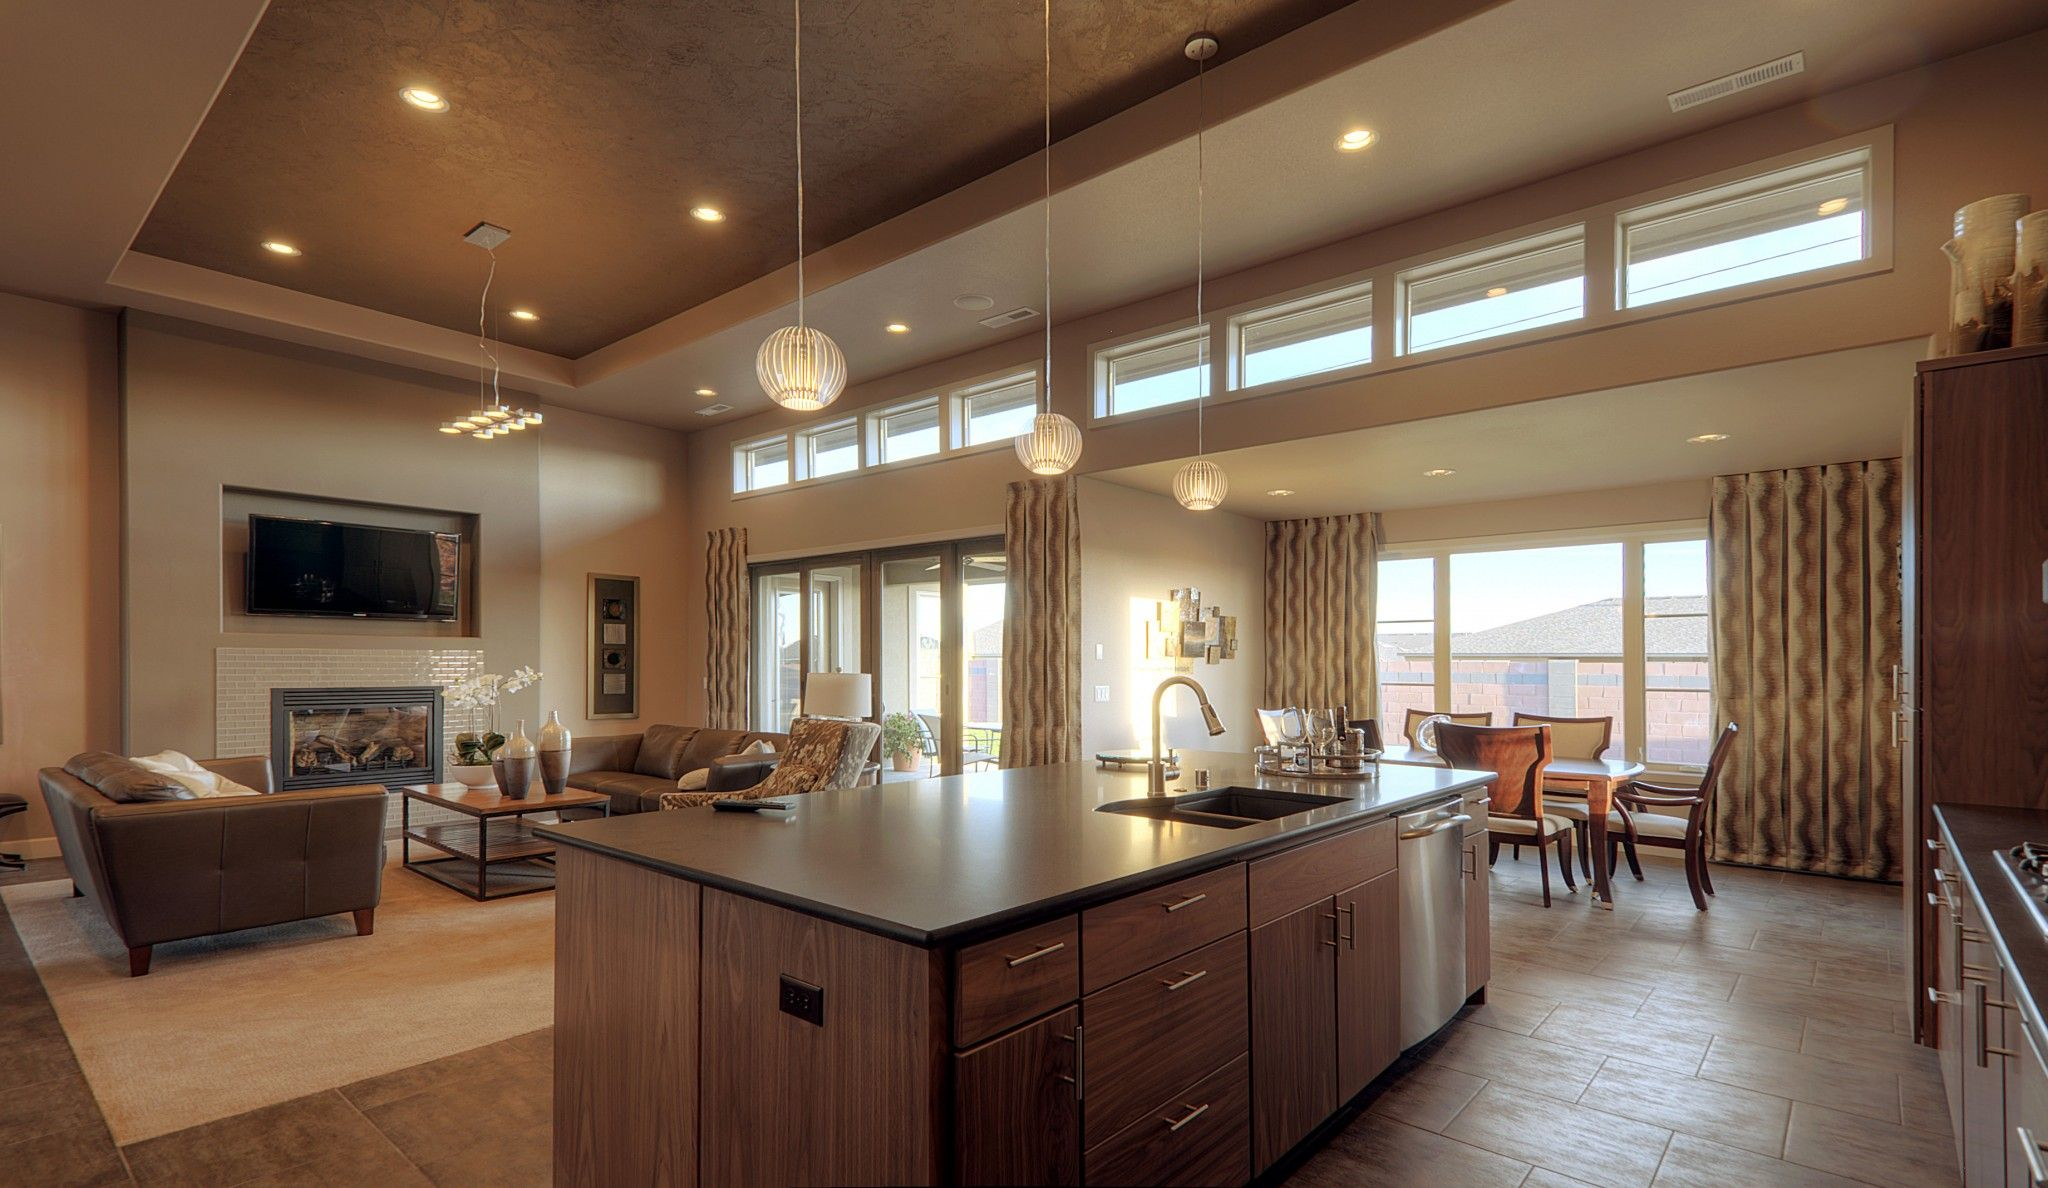 Image result for open plan interior design ideas